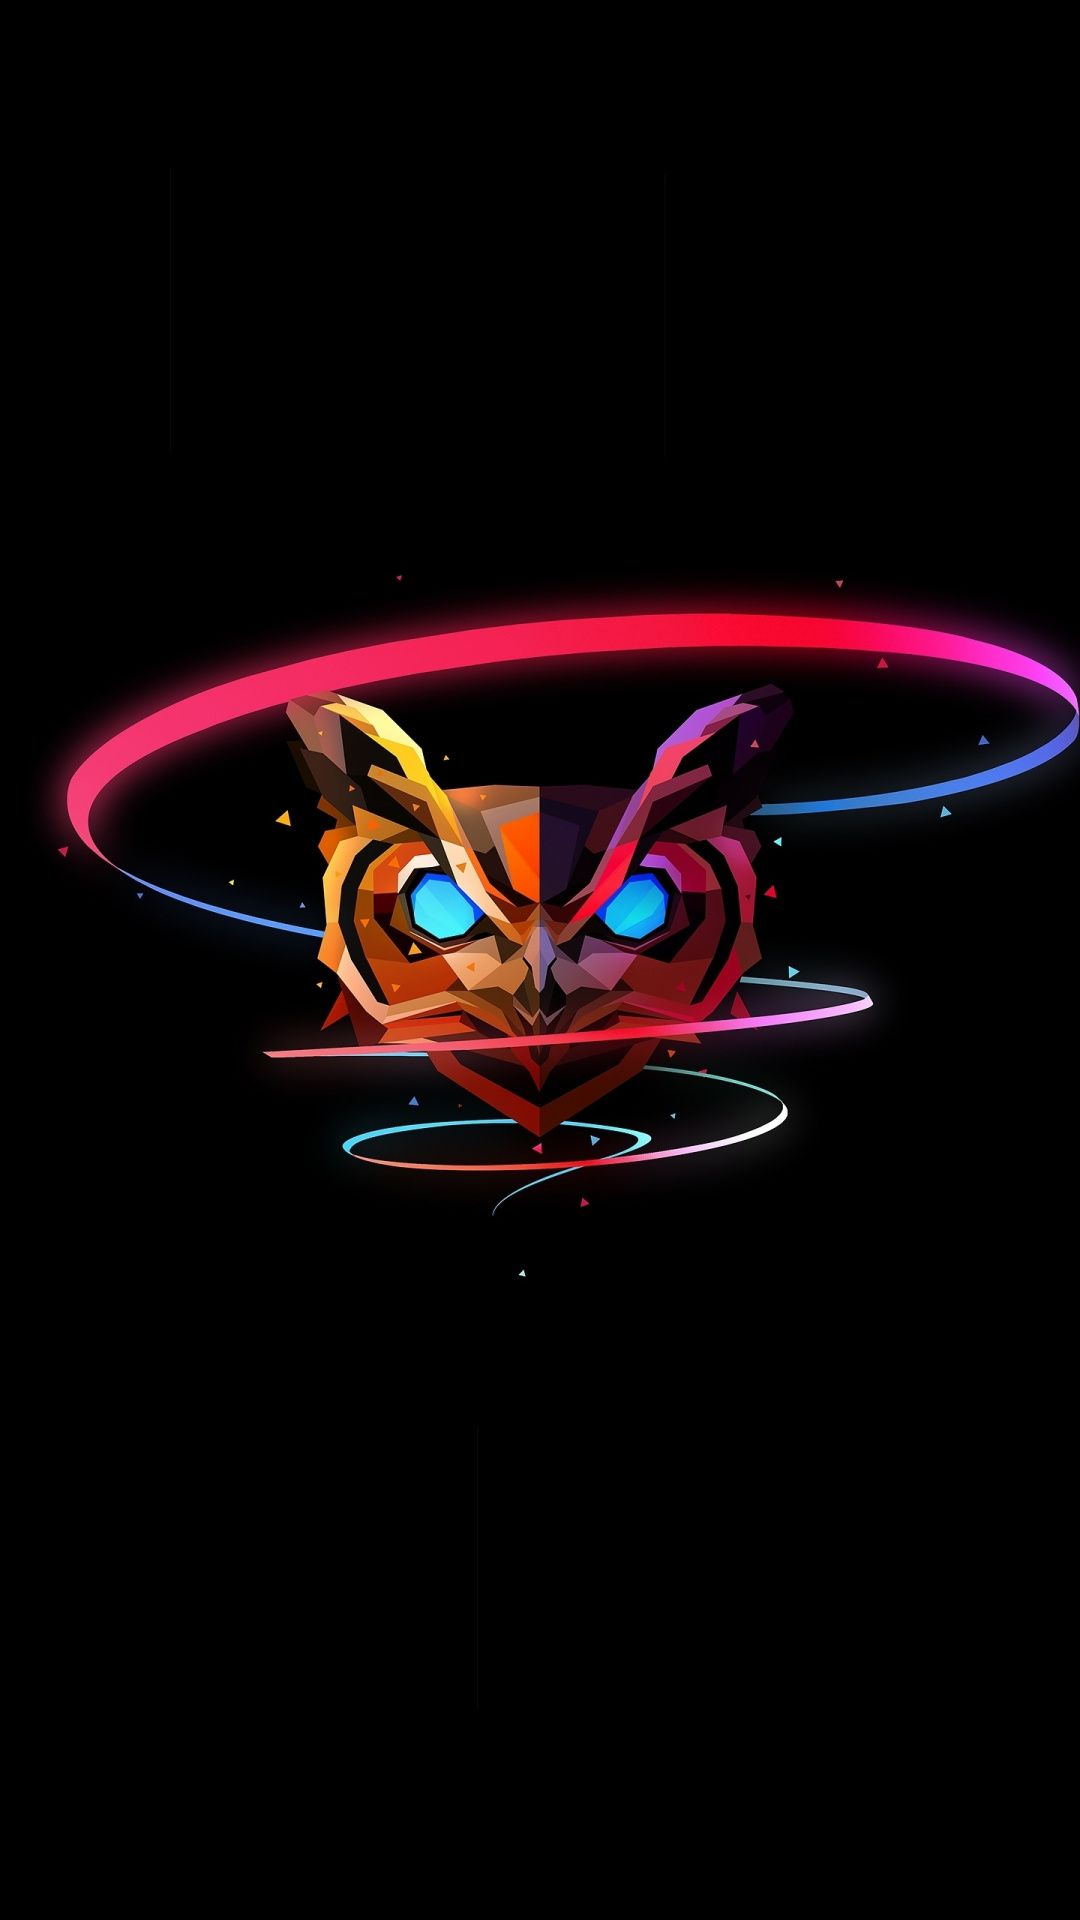 Owl colorful muzzle abstract art 1080x1920 wallpaper in 2020 1080x1920